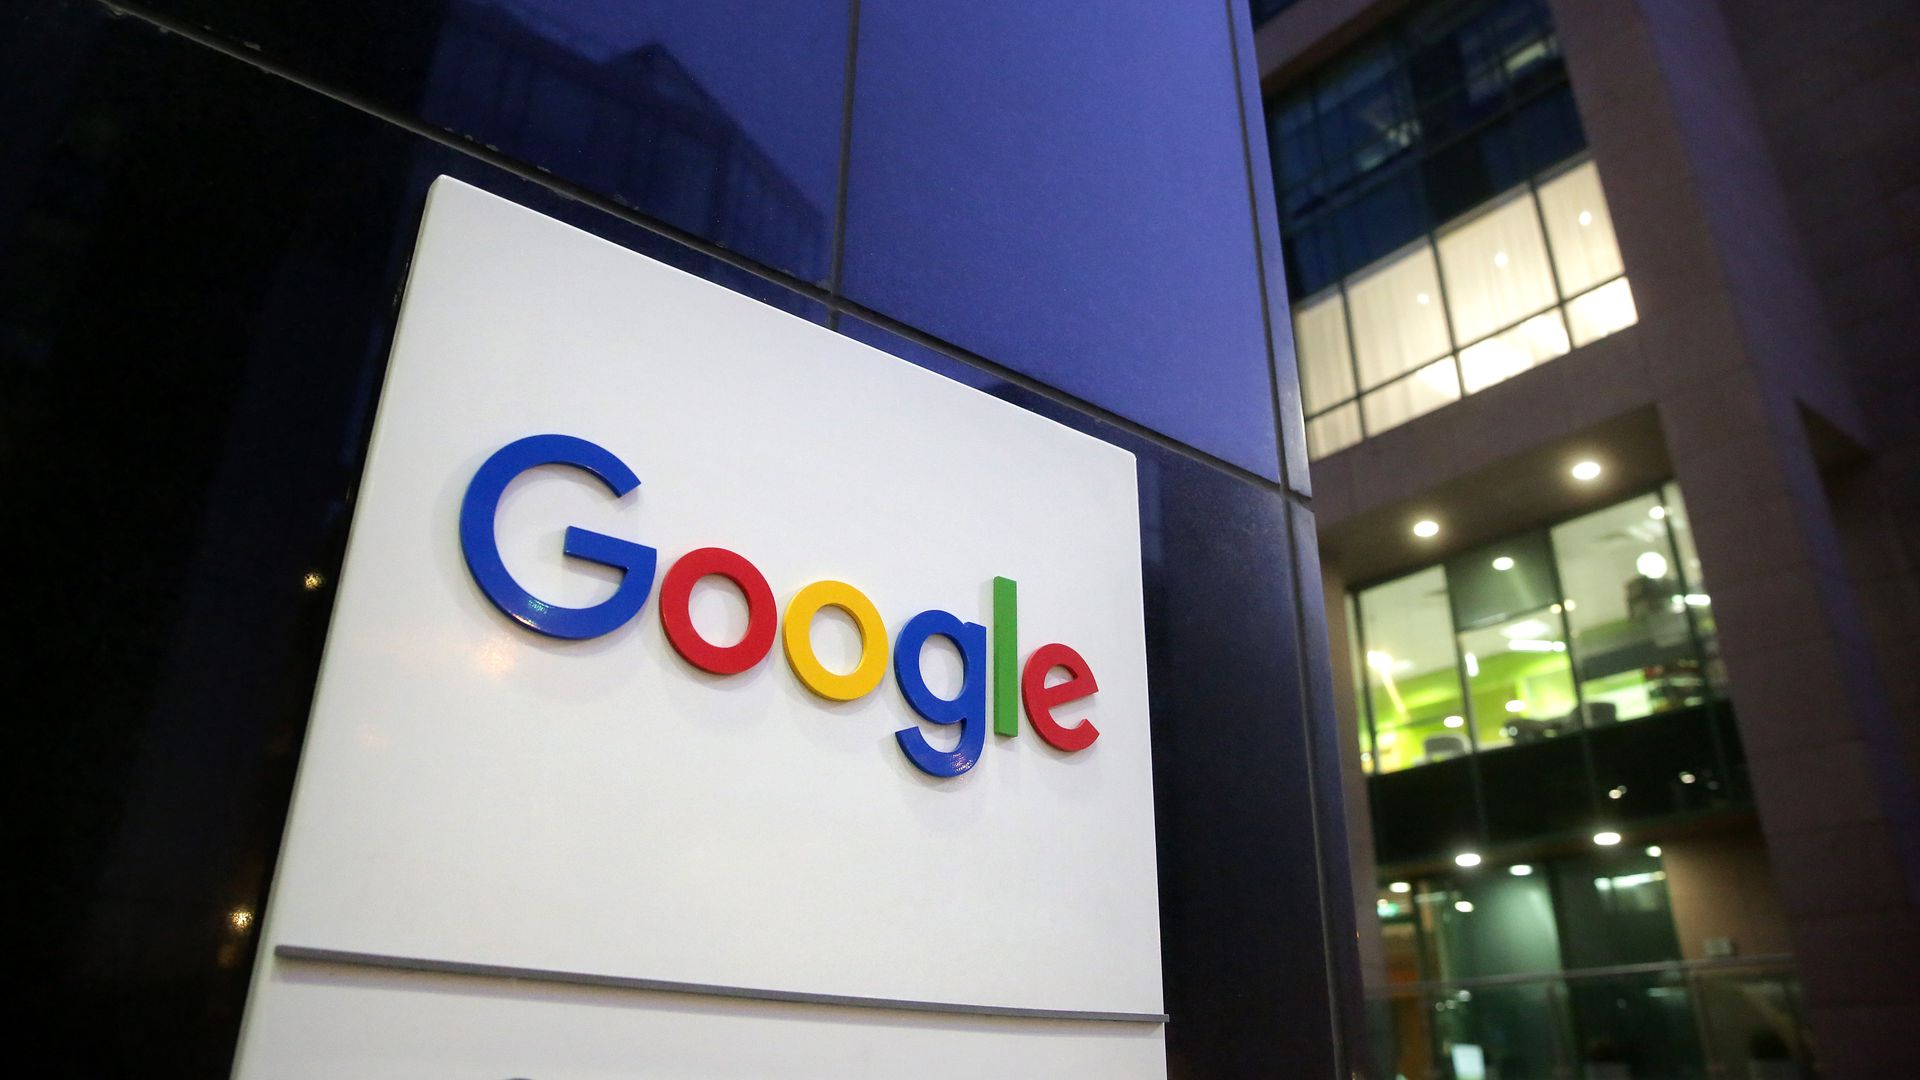 A sign with the Google logo